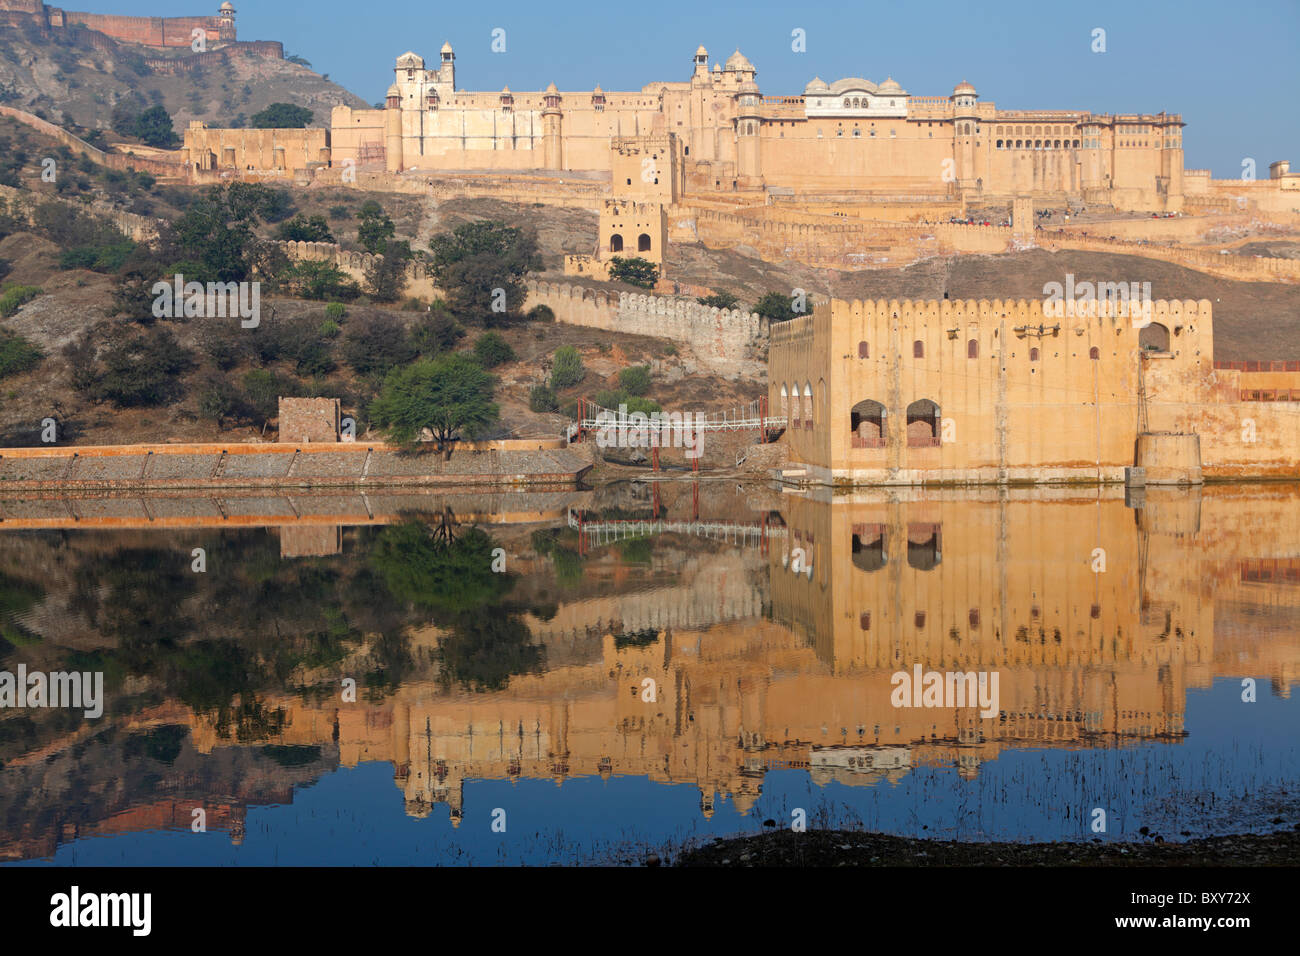 the Amber Fort reflected in the Maotha lake, Jaipur, India - Stock Image